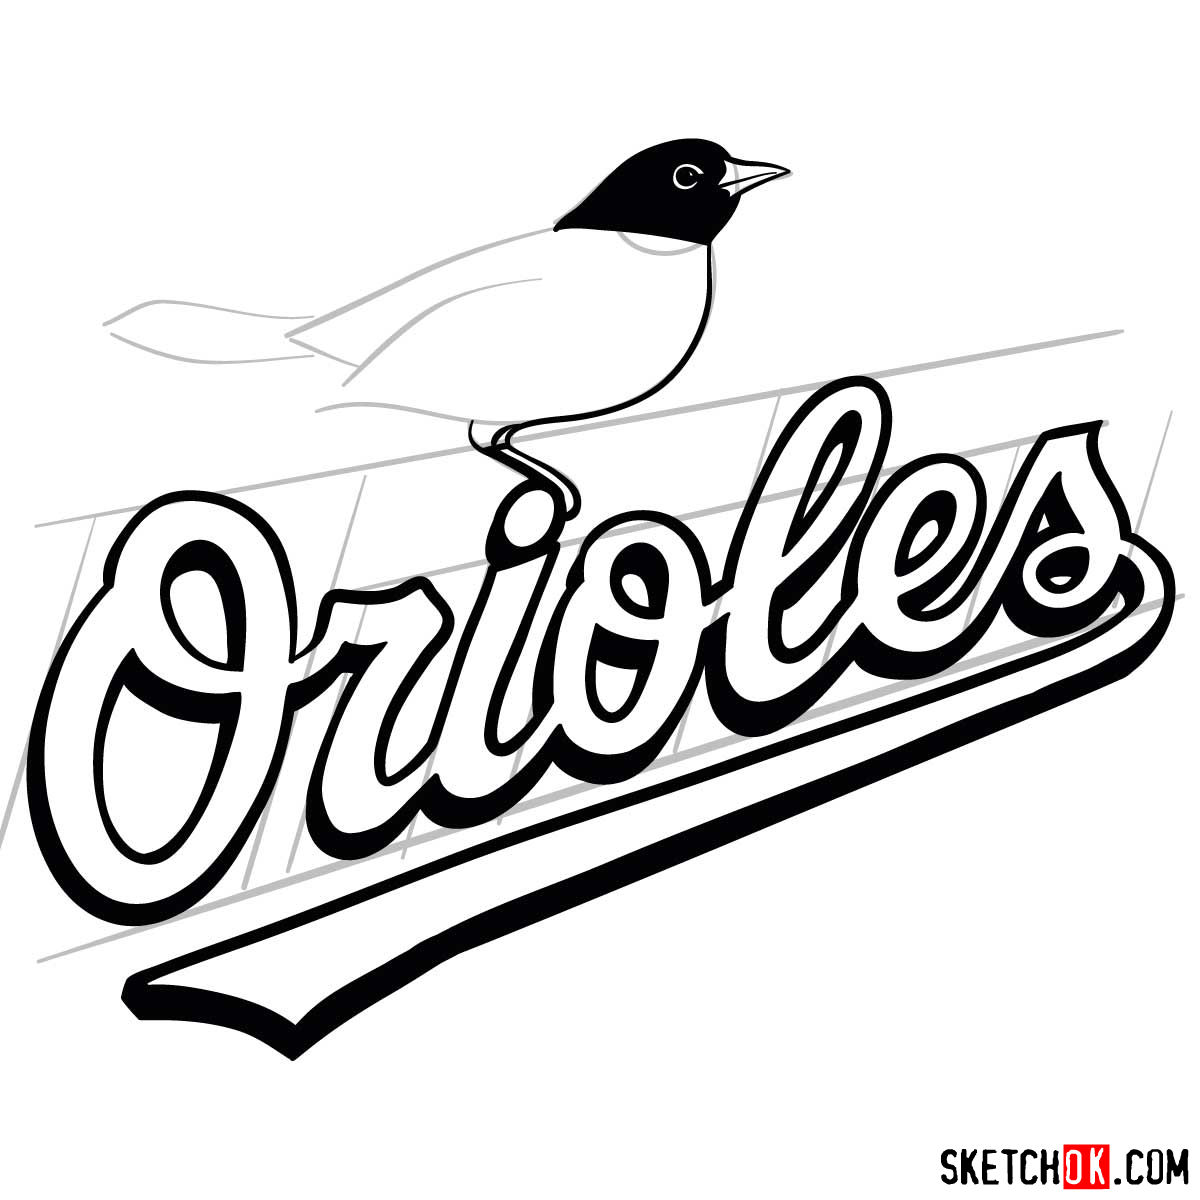 How to draw Baltimore Orioles logo | MLB logos - step 08